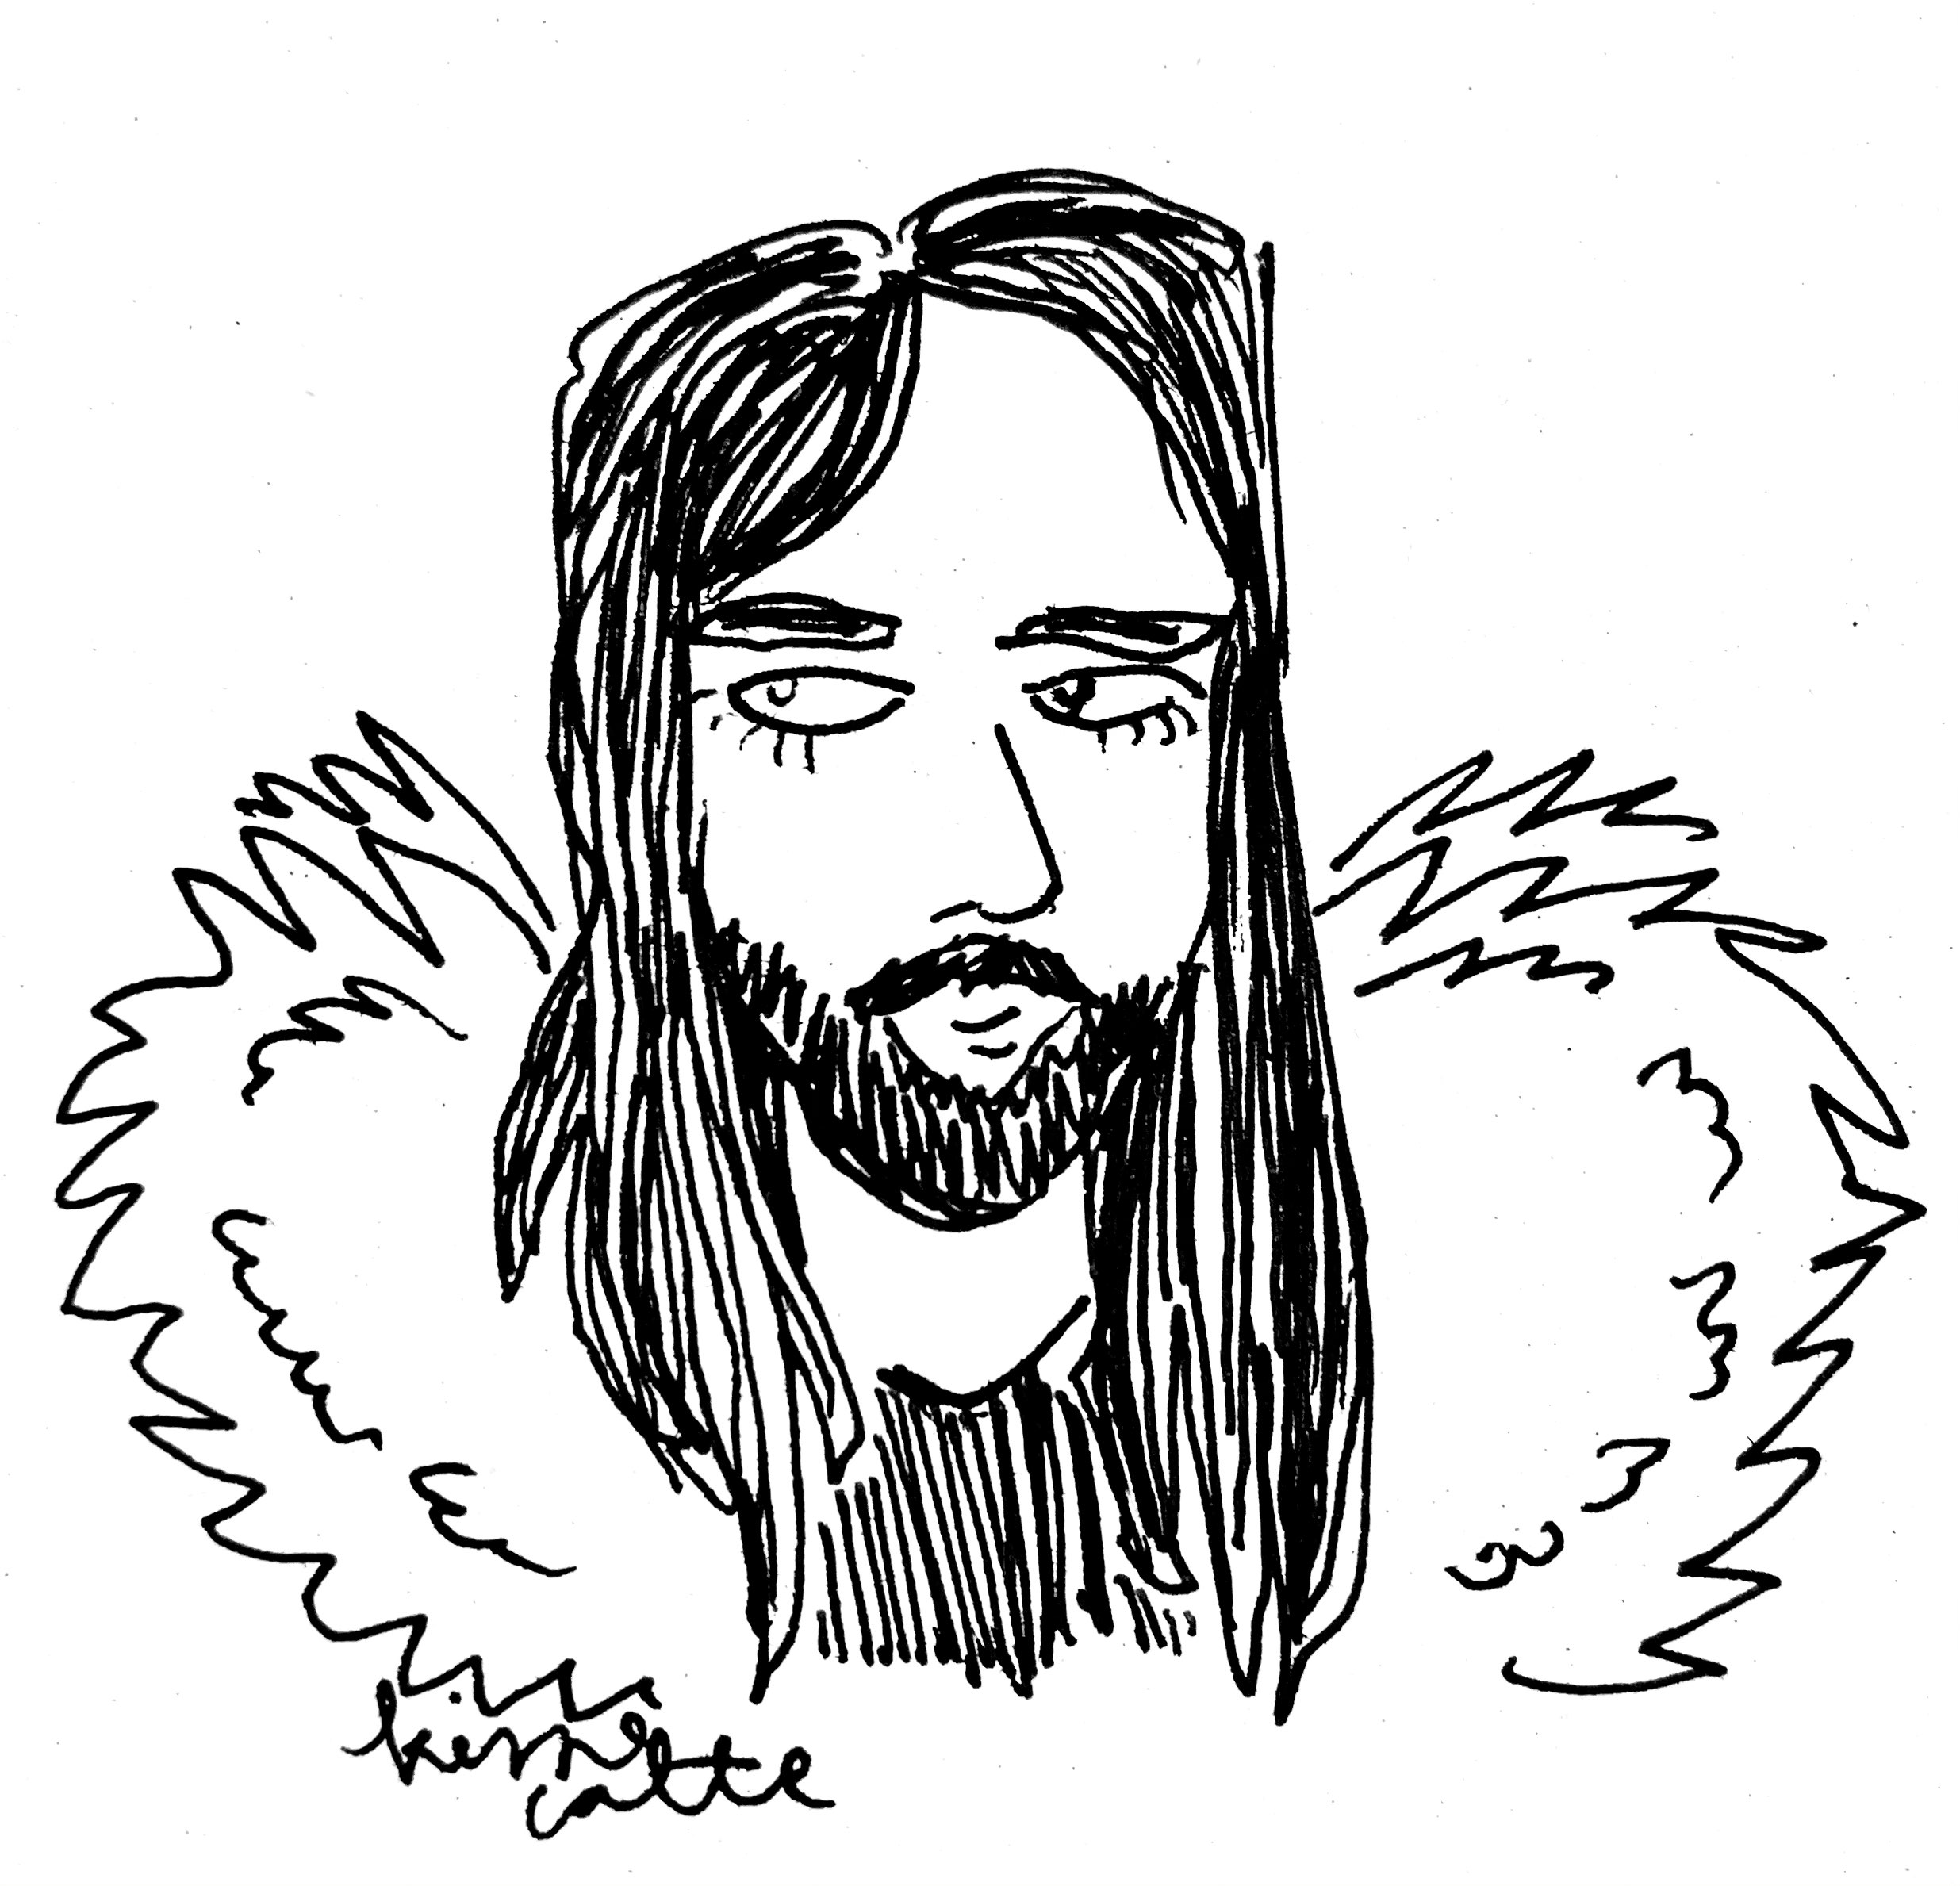 ballpoint pen drawing of a man with long hair and beard, black and white, made by kissecatte